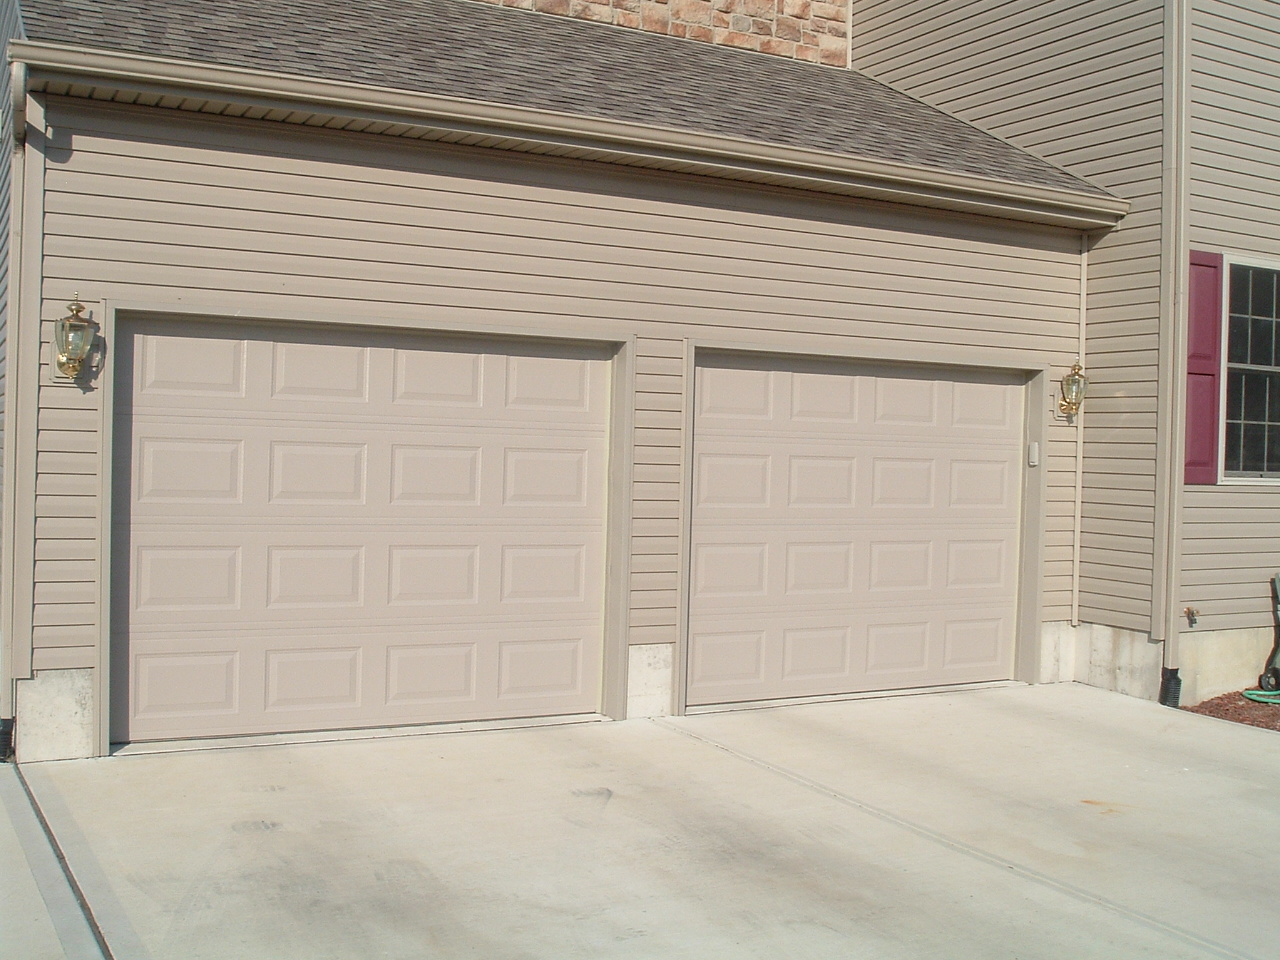 9x7 garage door aaa garage door garage doors 9 x 7 for Kitchen design 9x7